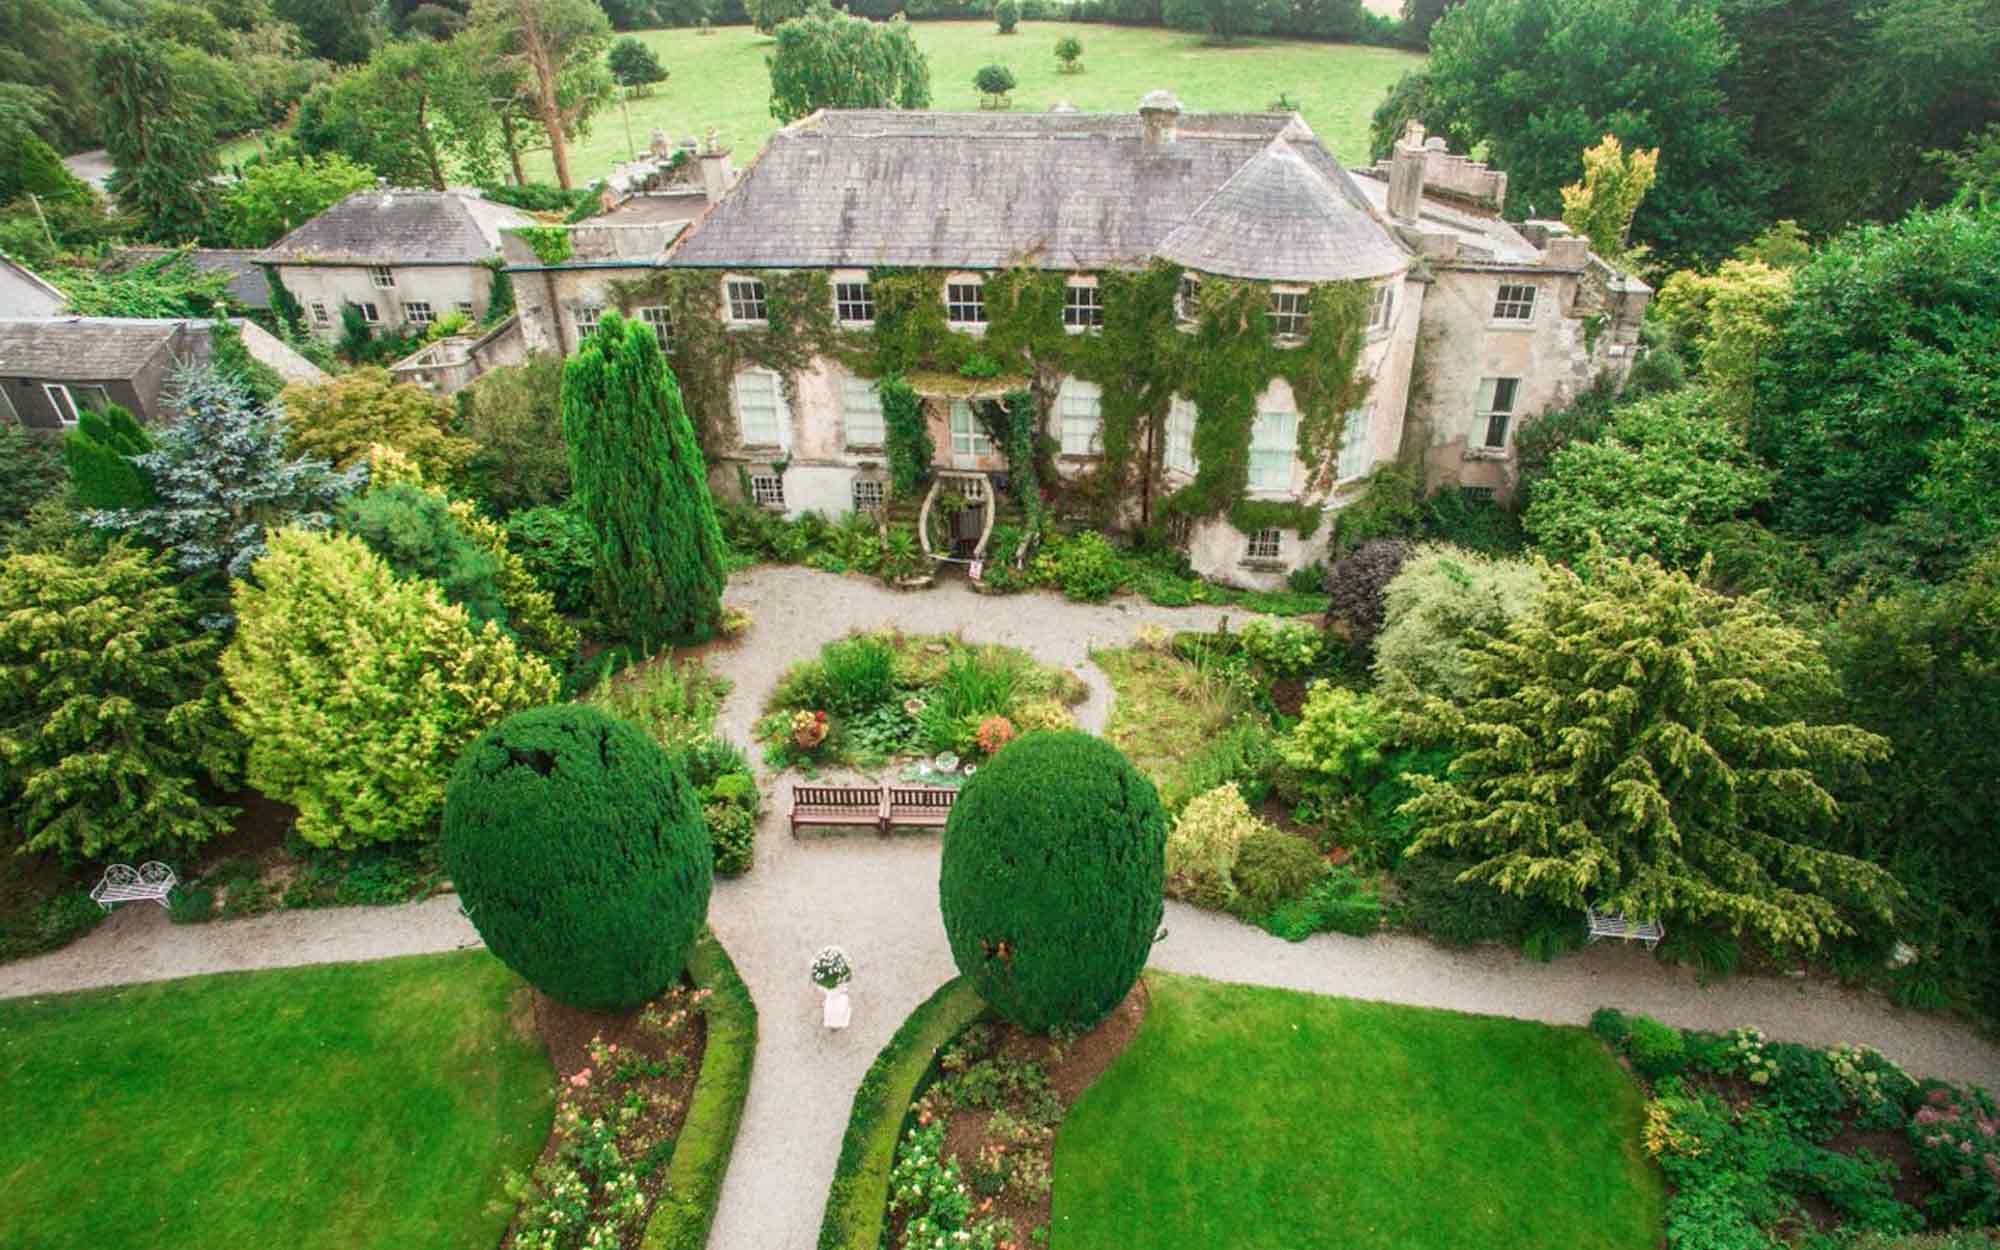 Aerial view of Altamont Gardens